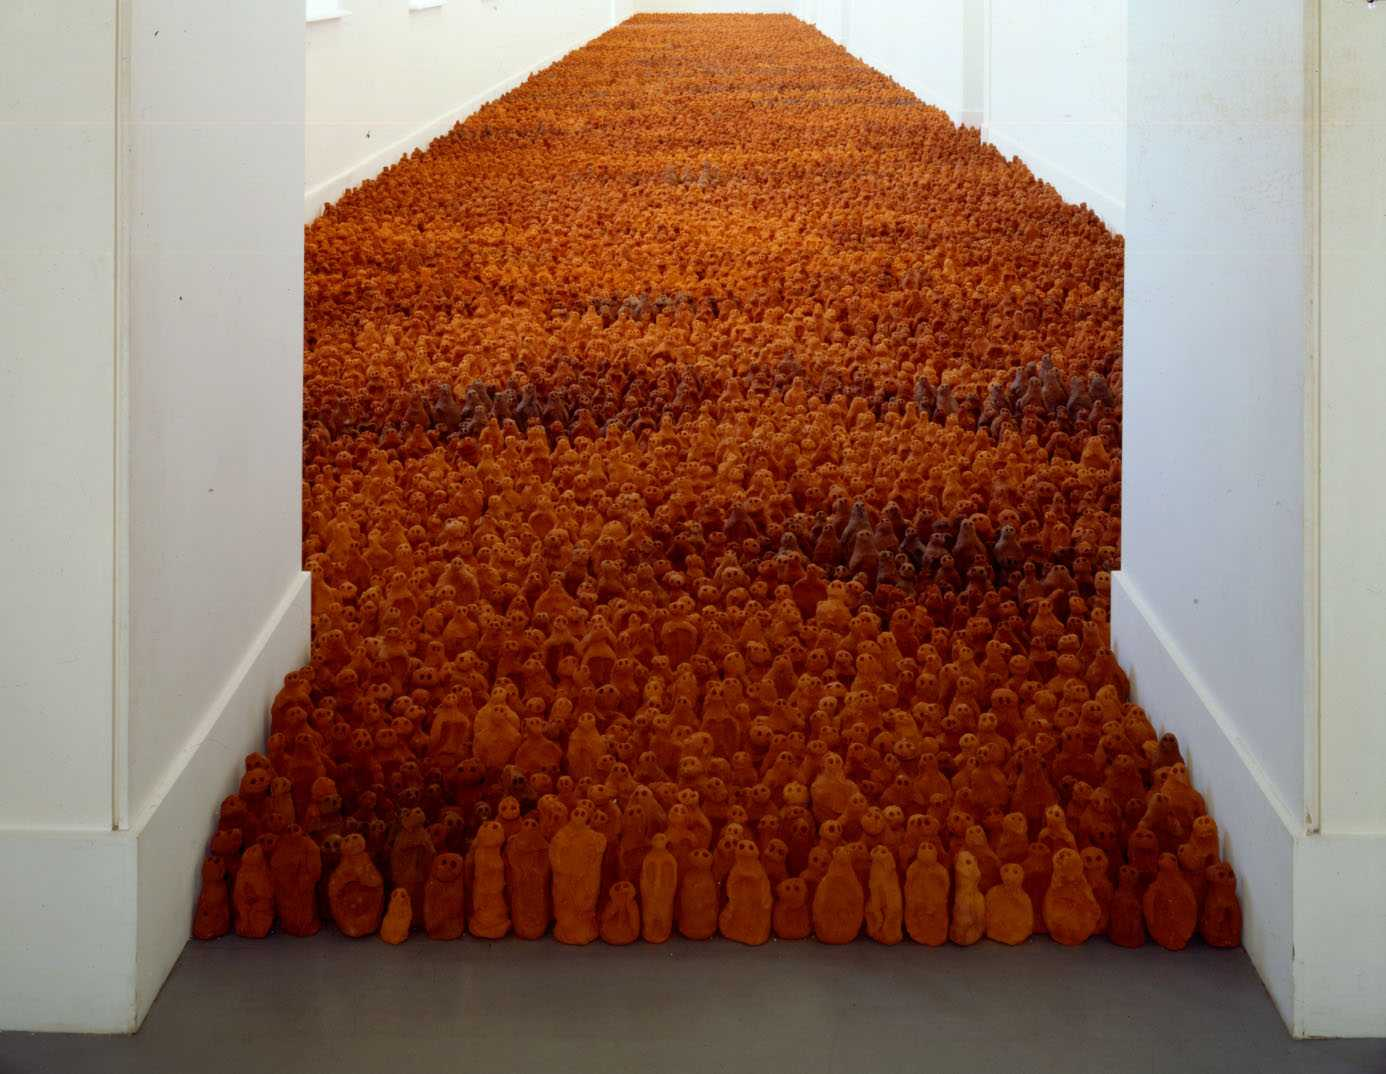 Antony Gormley - Terracotta Army